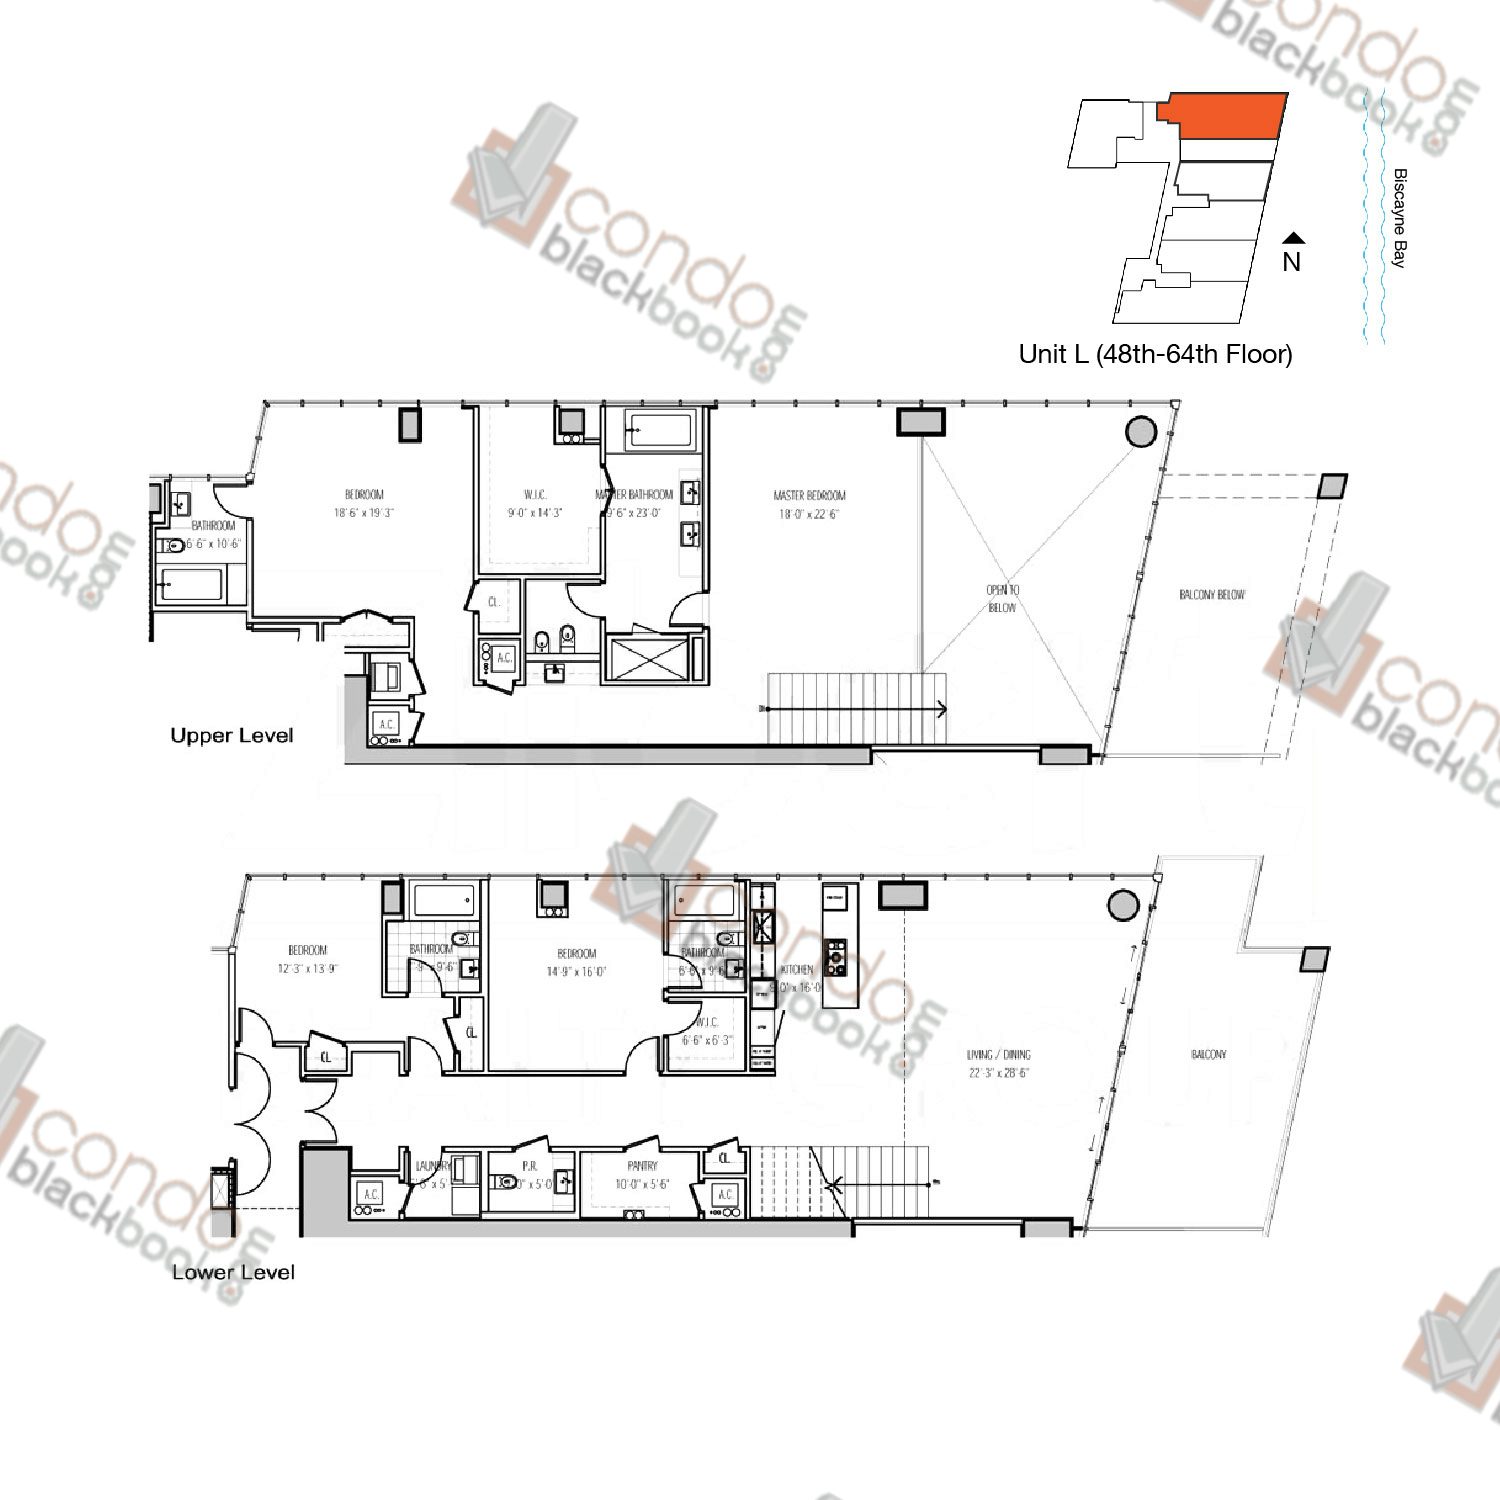 Floor plan for Marquis Downtown Miami Miami, model L, line 06, 4/4.5 bedrooms, 3,800 sq ft